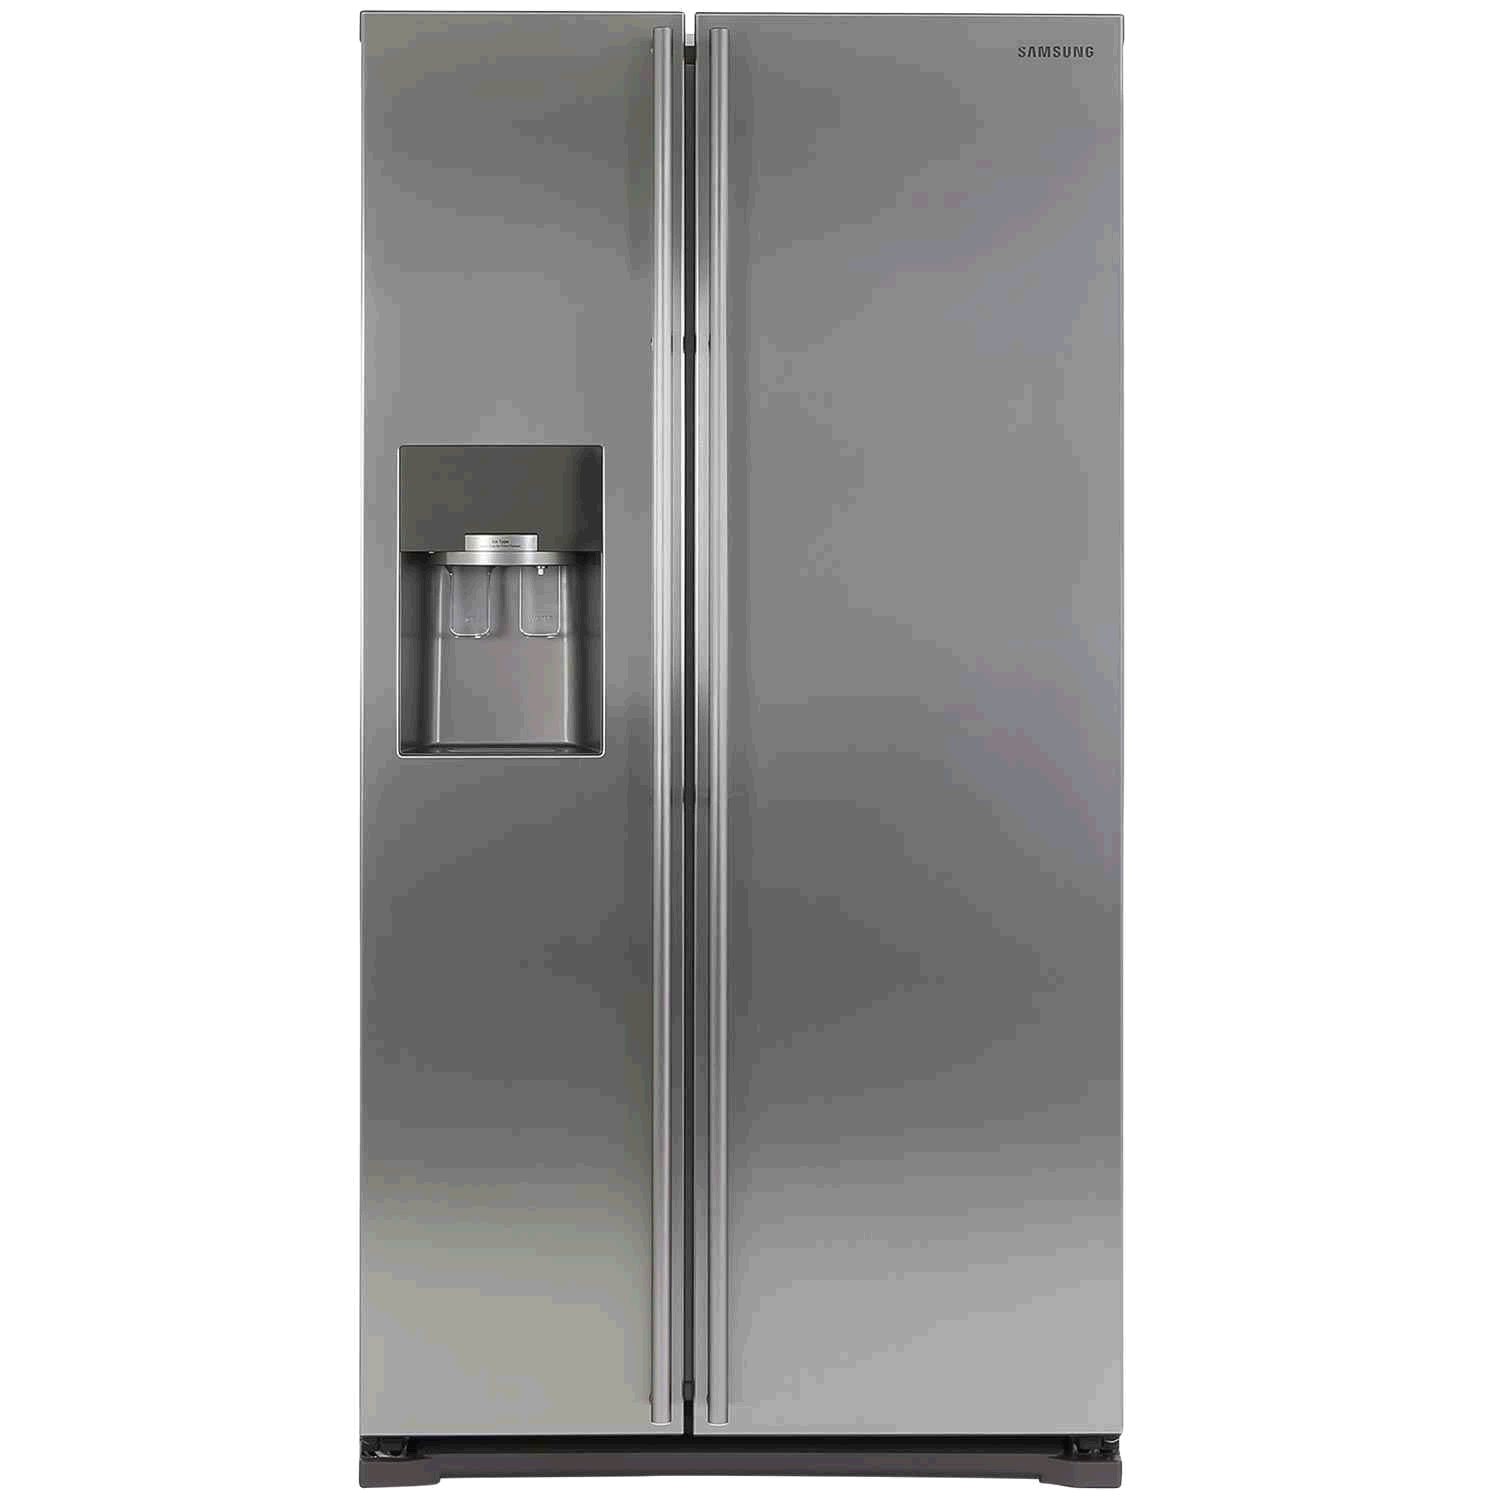 Samsung RS7567BHCSL American Style Frost Free  Fridge Freezer Stainless Steel Plumbed In Water and Ice Dispenser